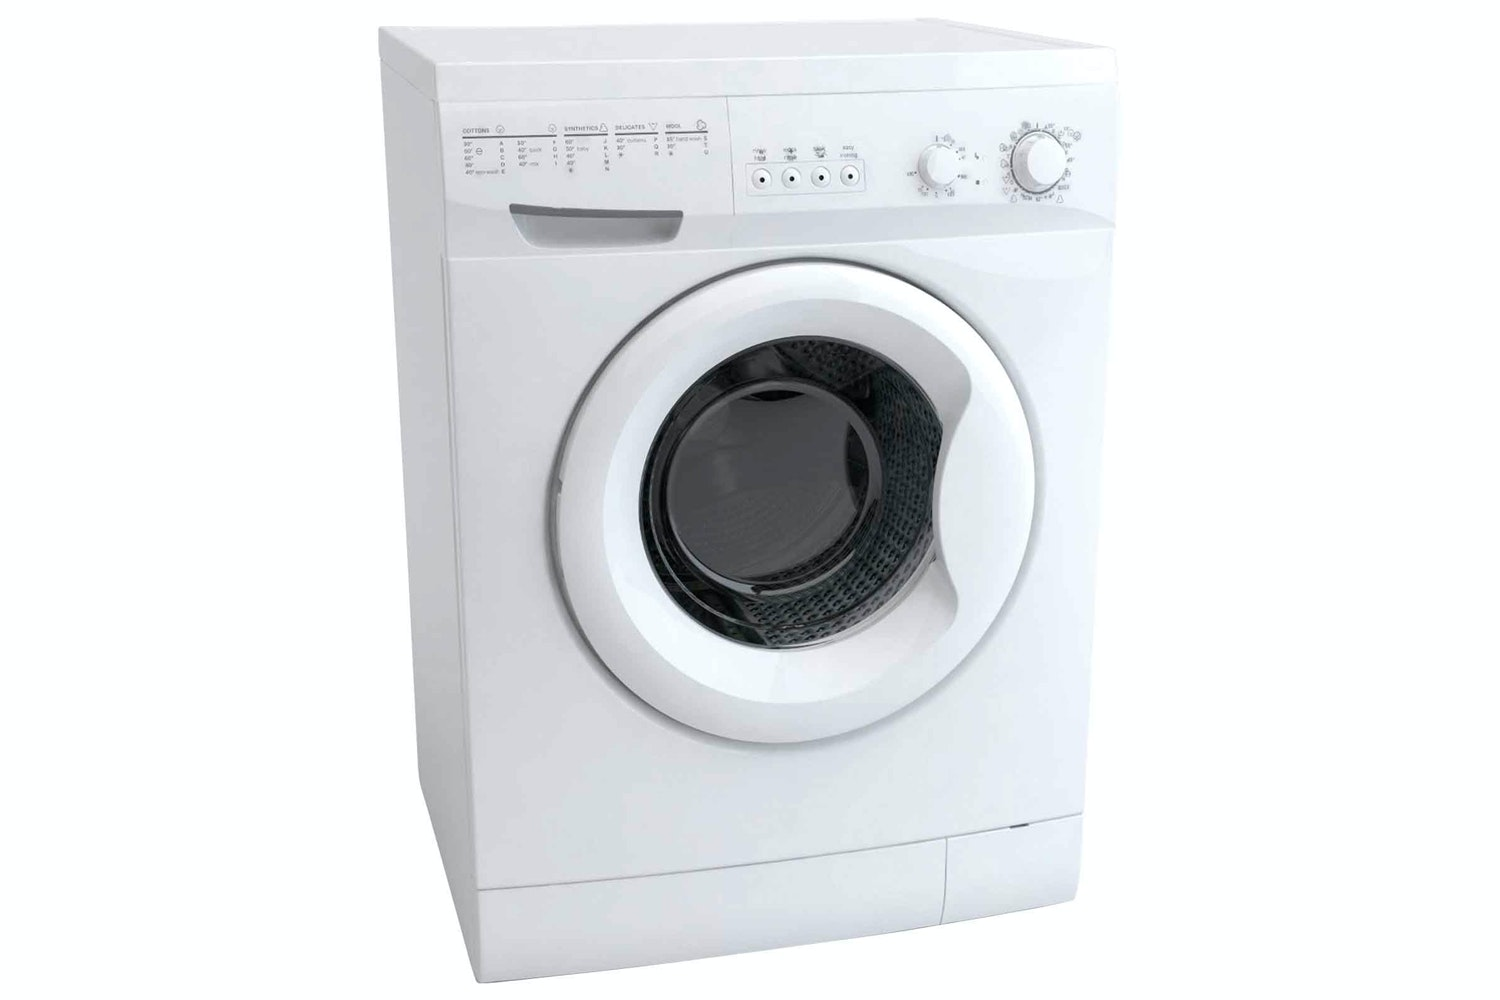 Finlux 5kg Washing Machine | FWM510P